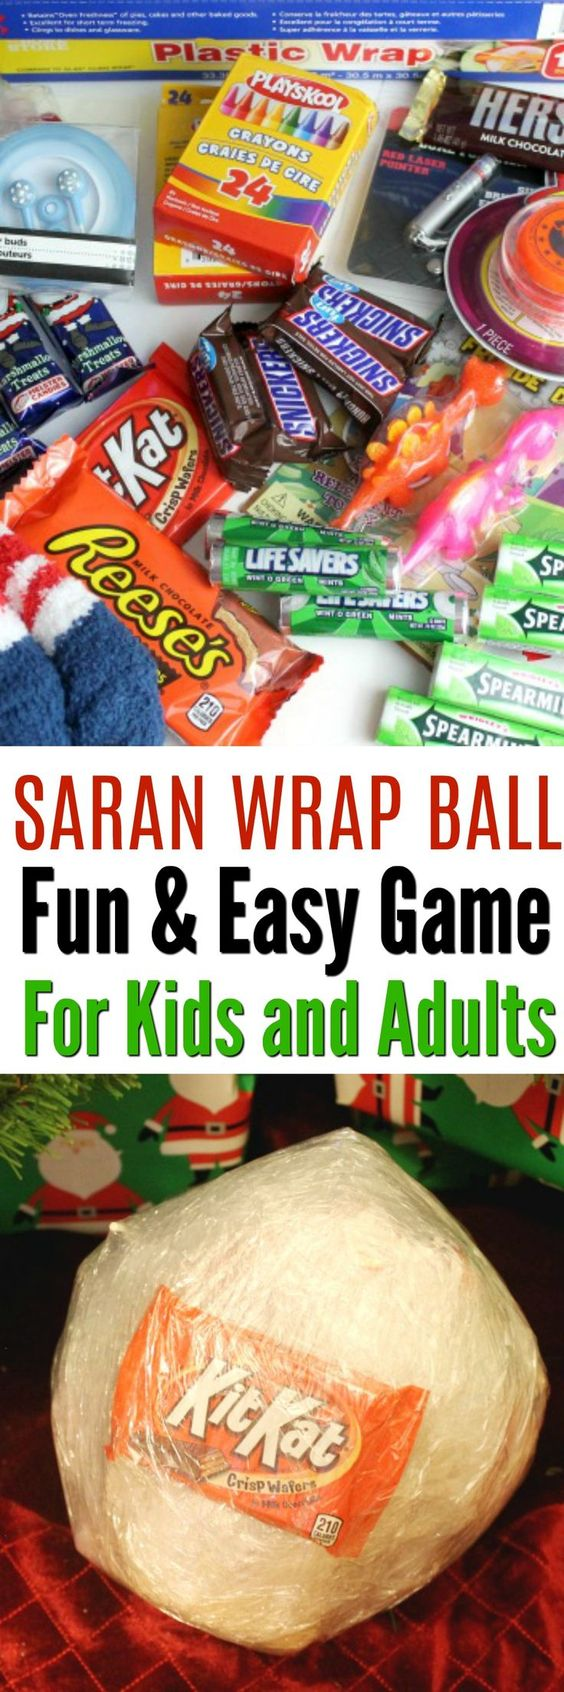 Have You Heard Of The Saran Wrap Candy Ball Game? | Candy ball games ...